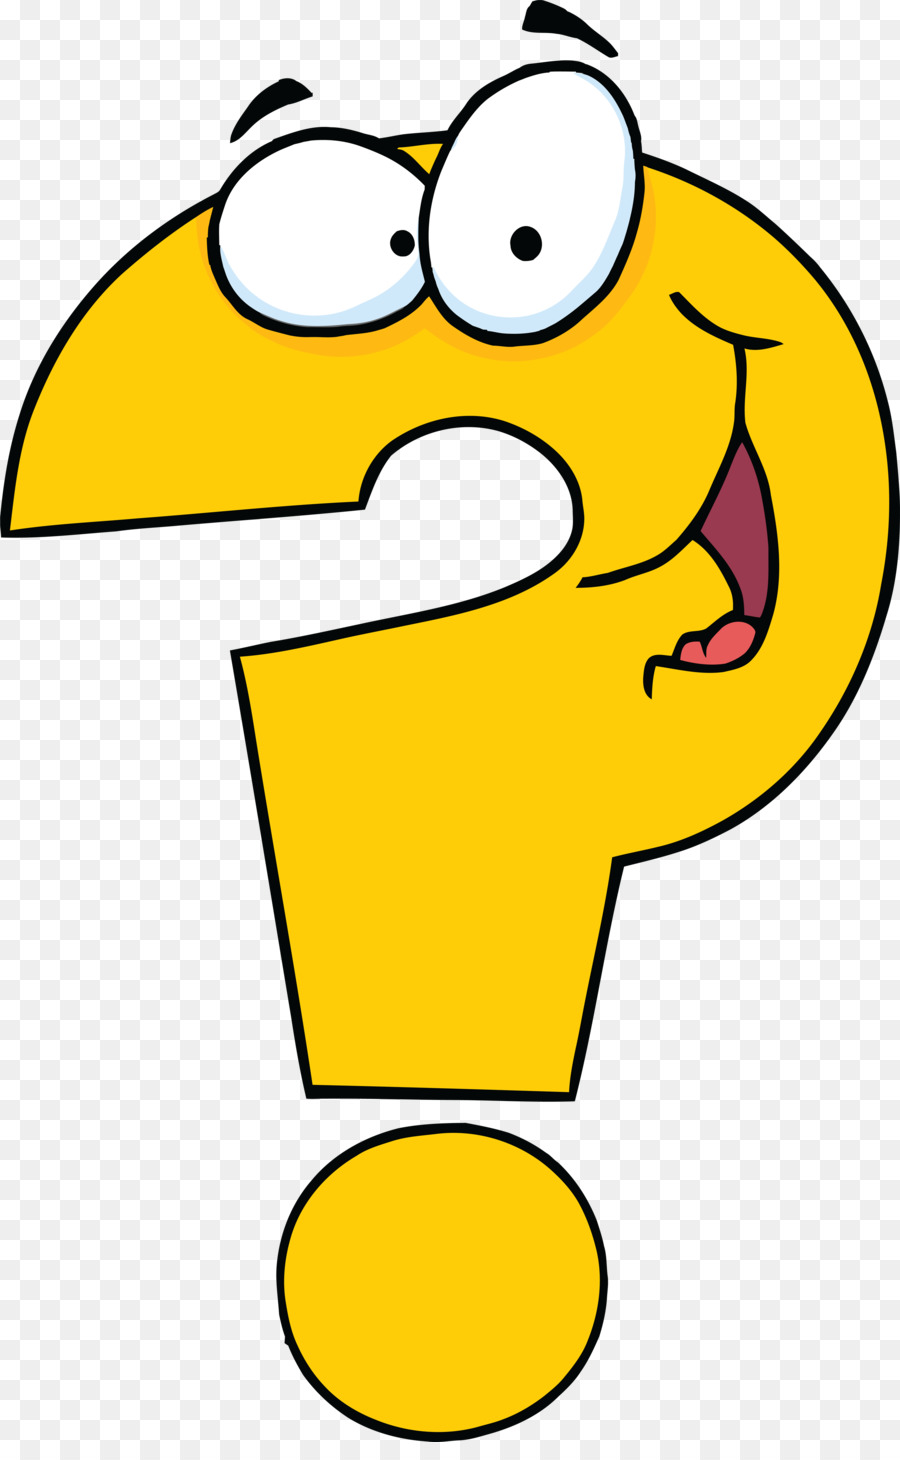 question mark emoticon clip art silly question cliparts png rh kisspng com question mark clipart png question mark clipart free